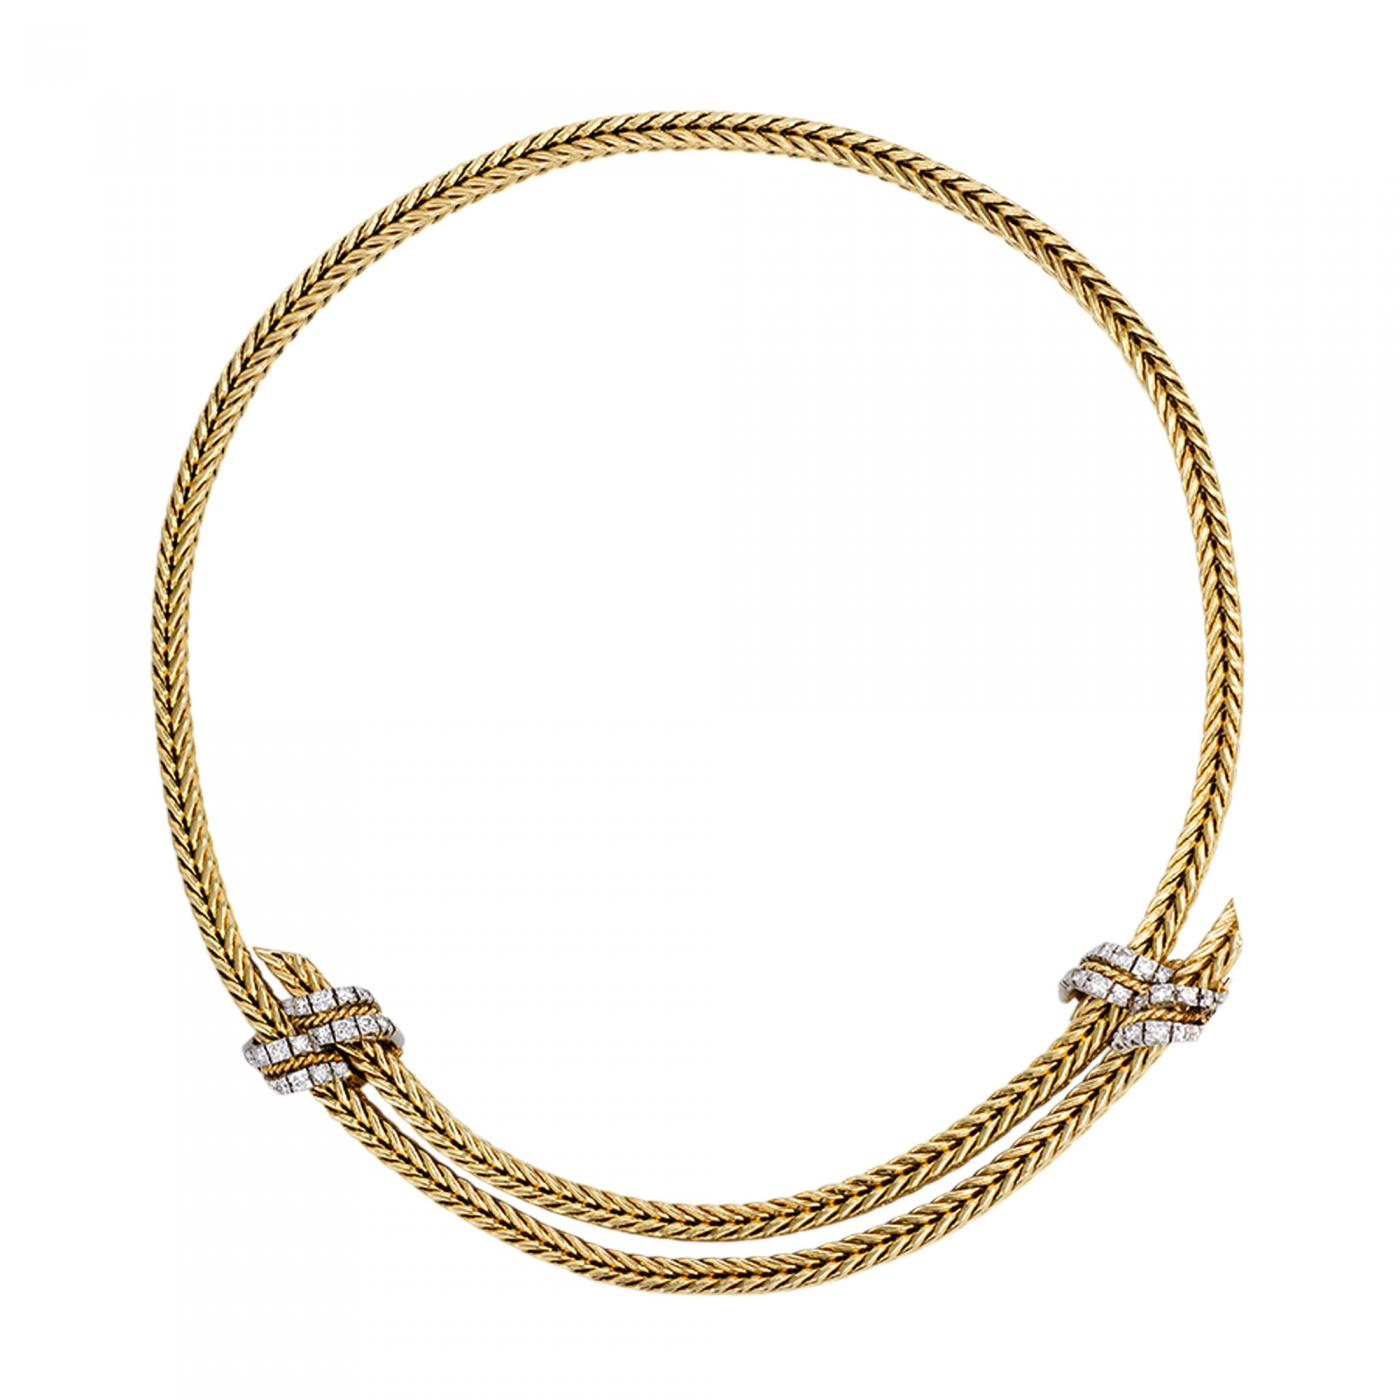 Hermès - 1950s Adjustable Gold and Diamond Necklace, Georges L ...